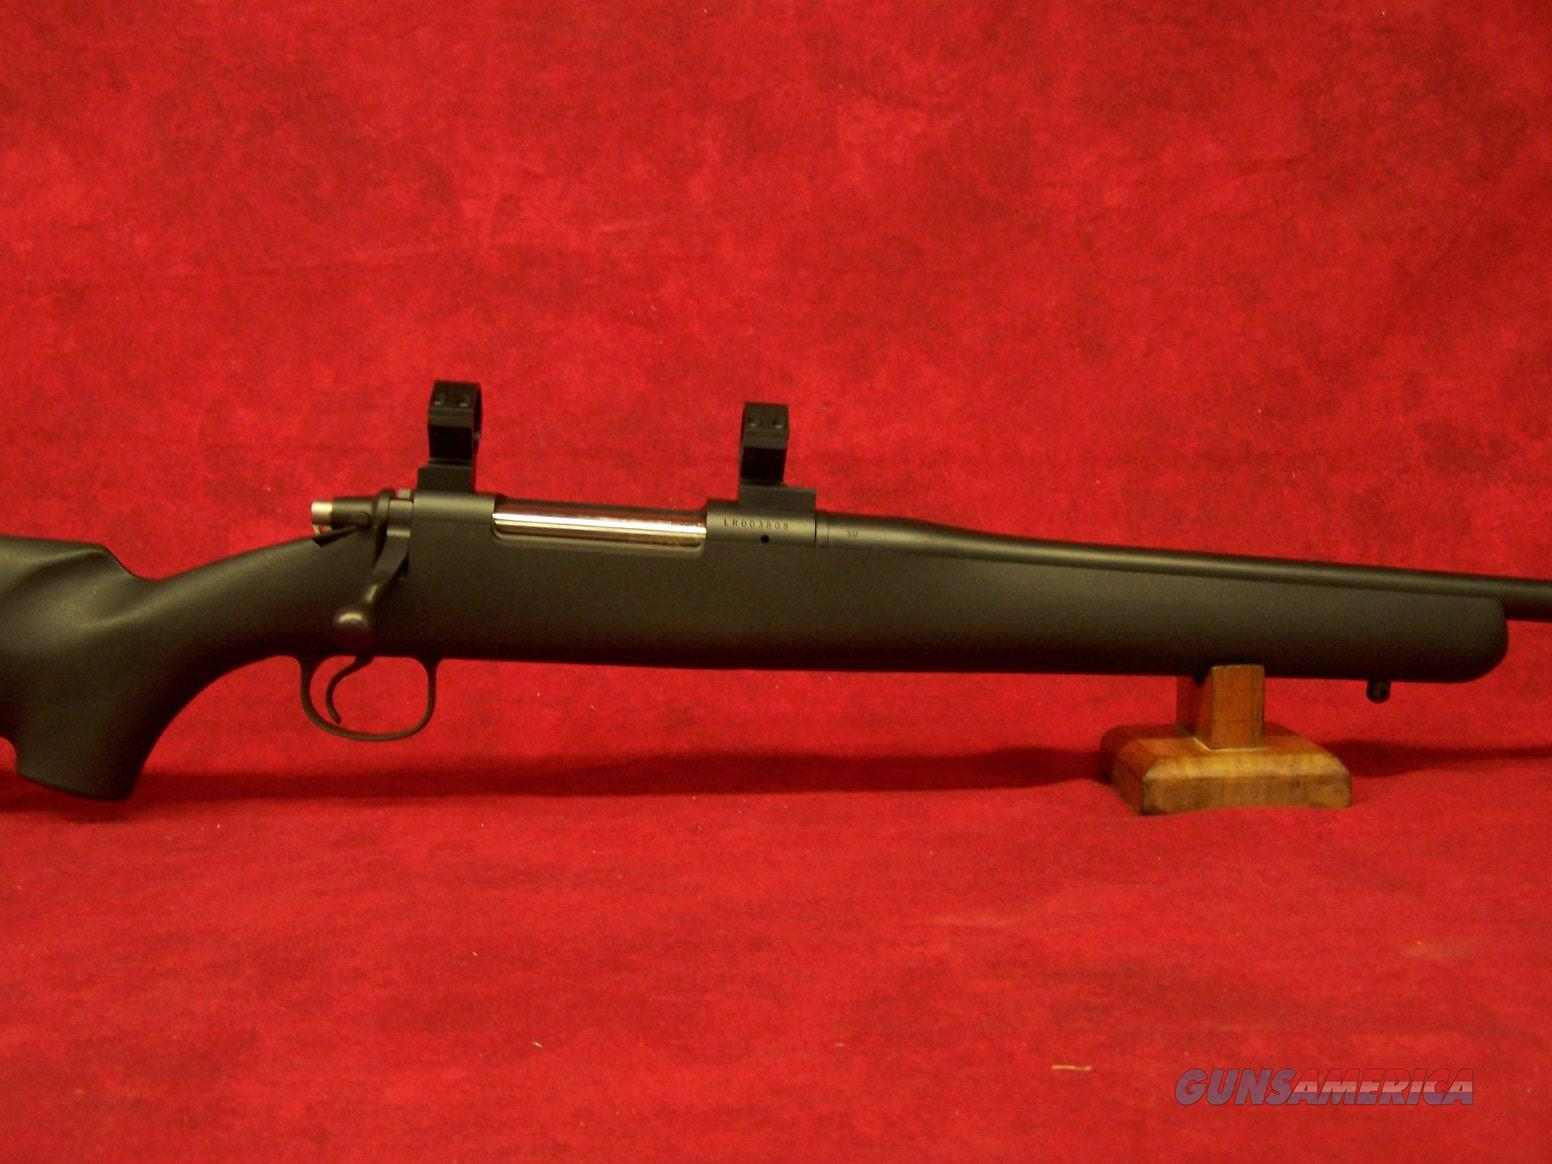 "Colt Light Rifle 30.06 24"" Barrel  Guns > Rifles > Colt Rifles - Non-AR15 Modern Rifles"